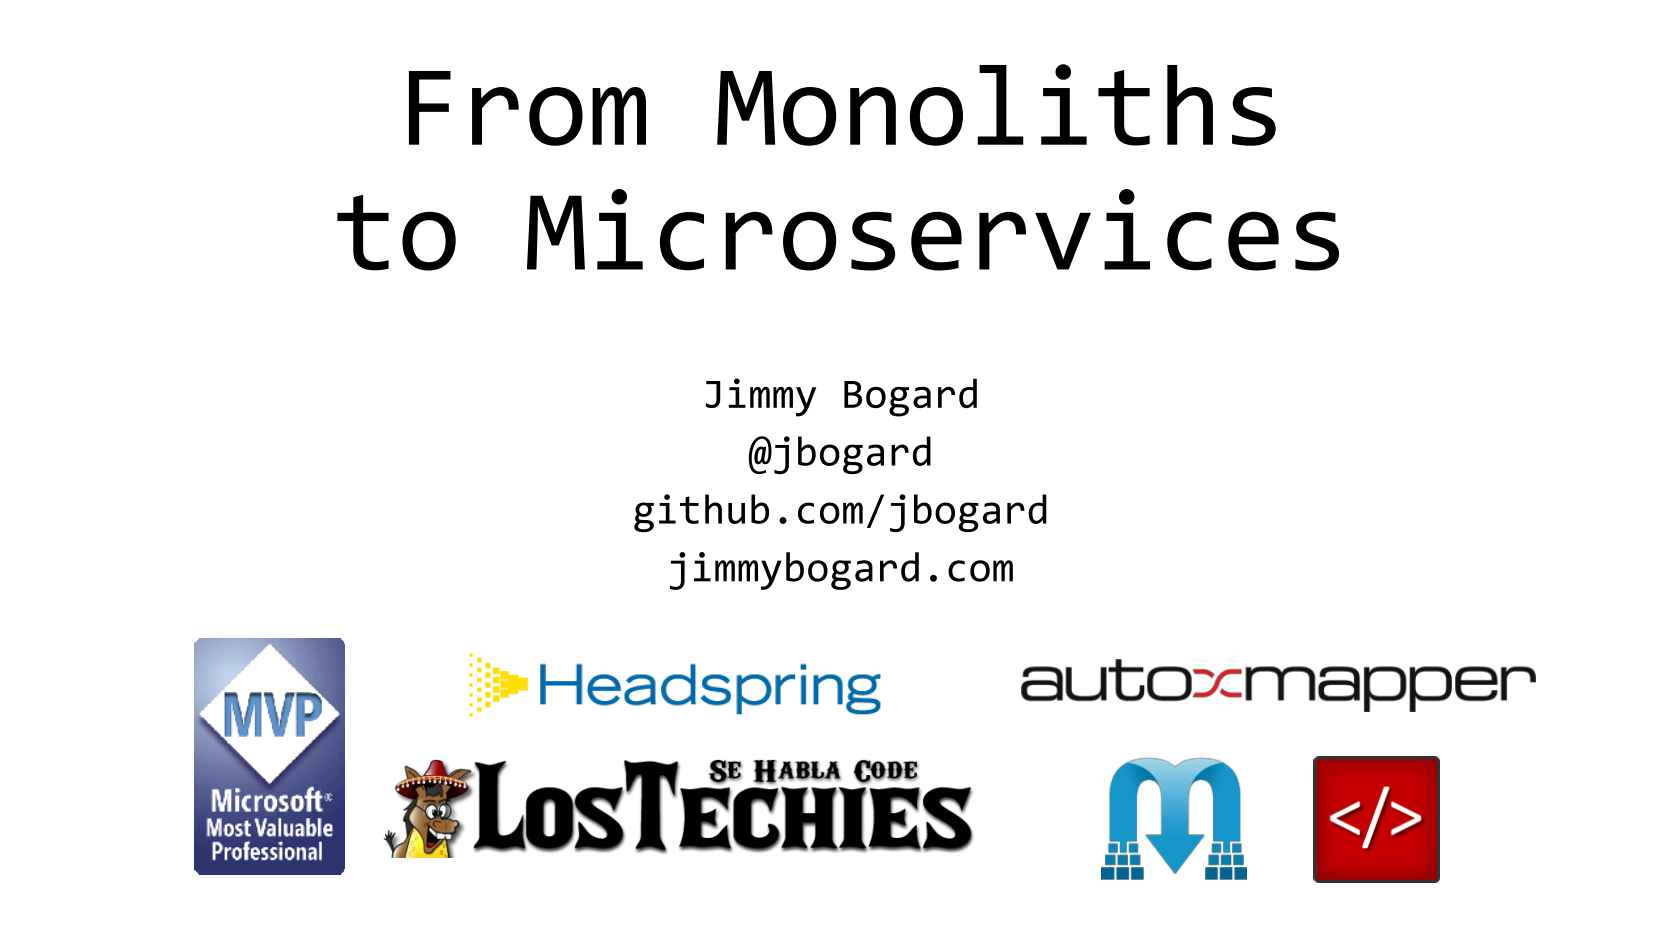 Getting from Monolith to Microservices